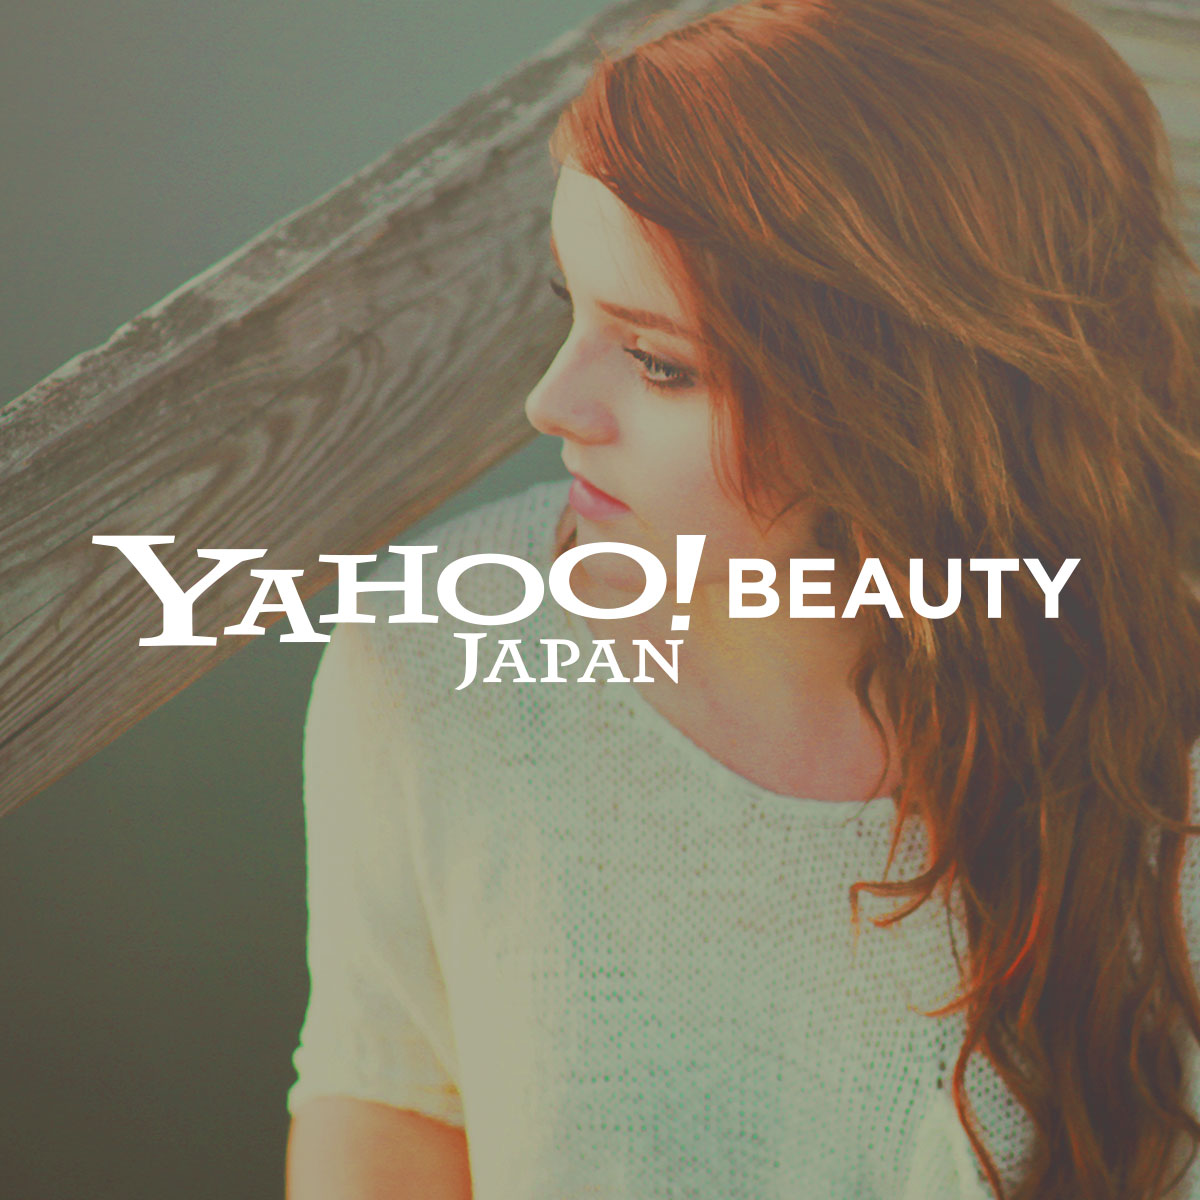 Yahoo! BEAUTY